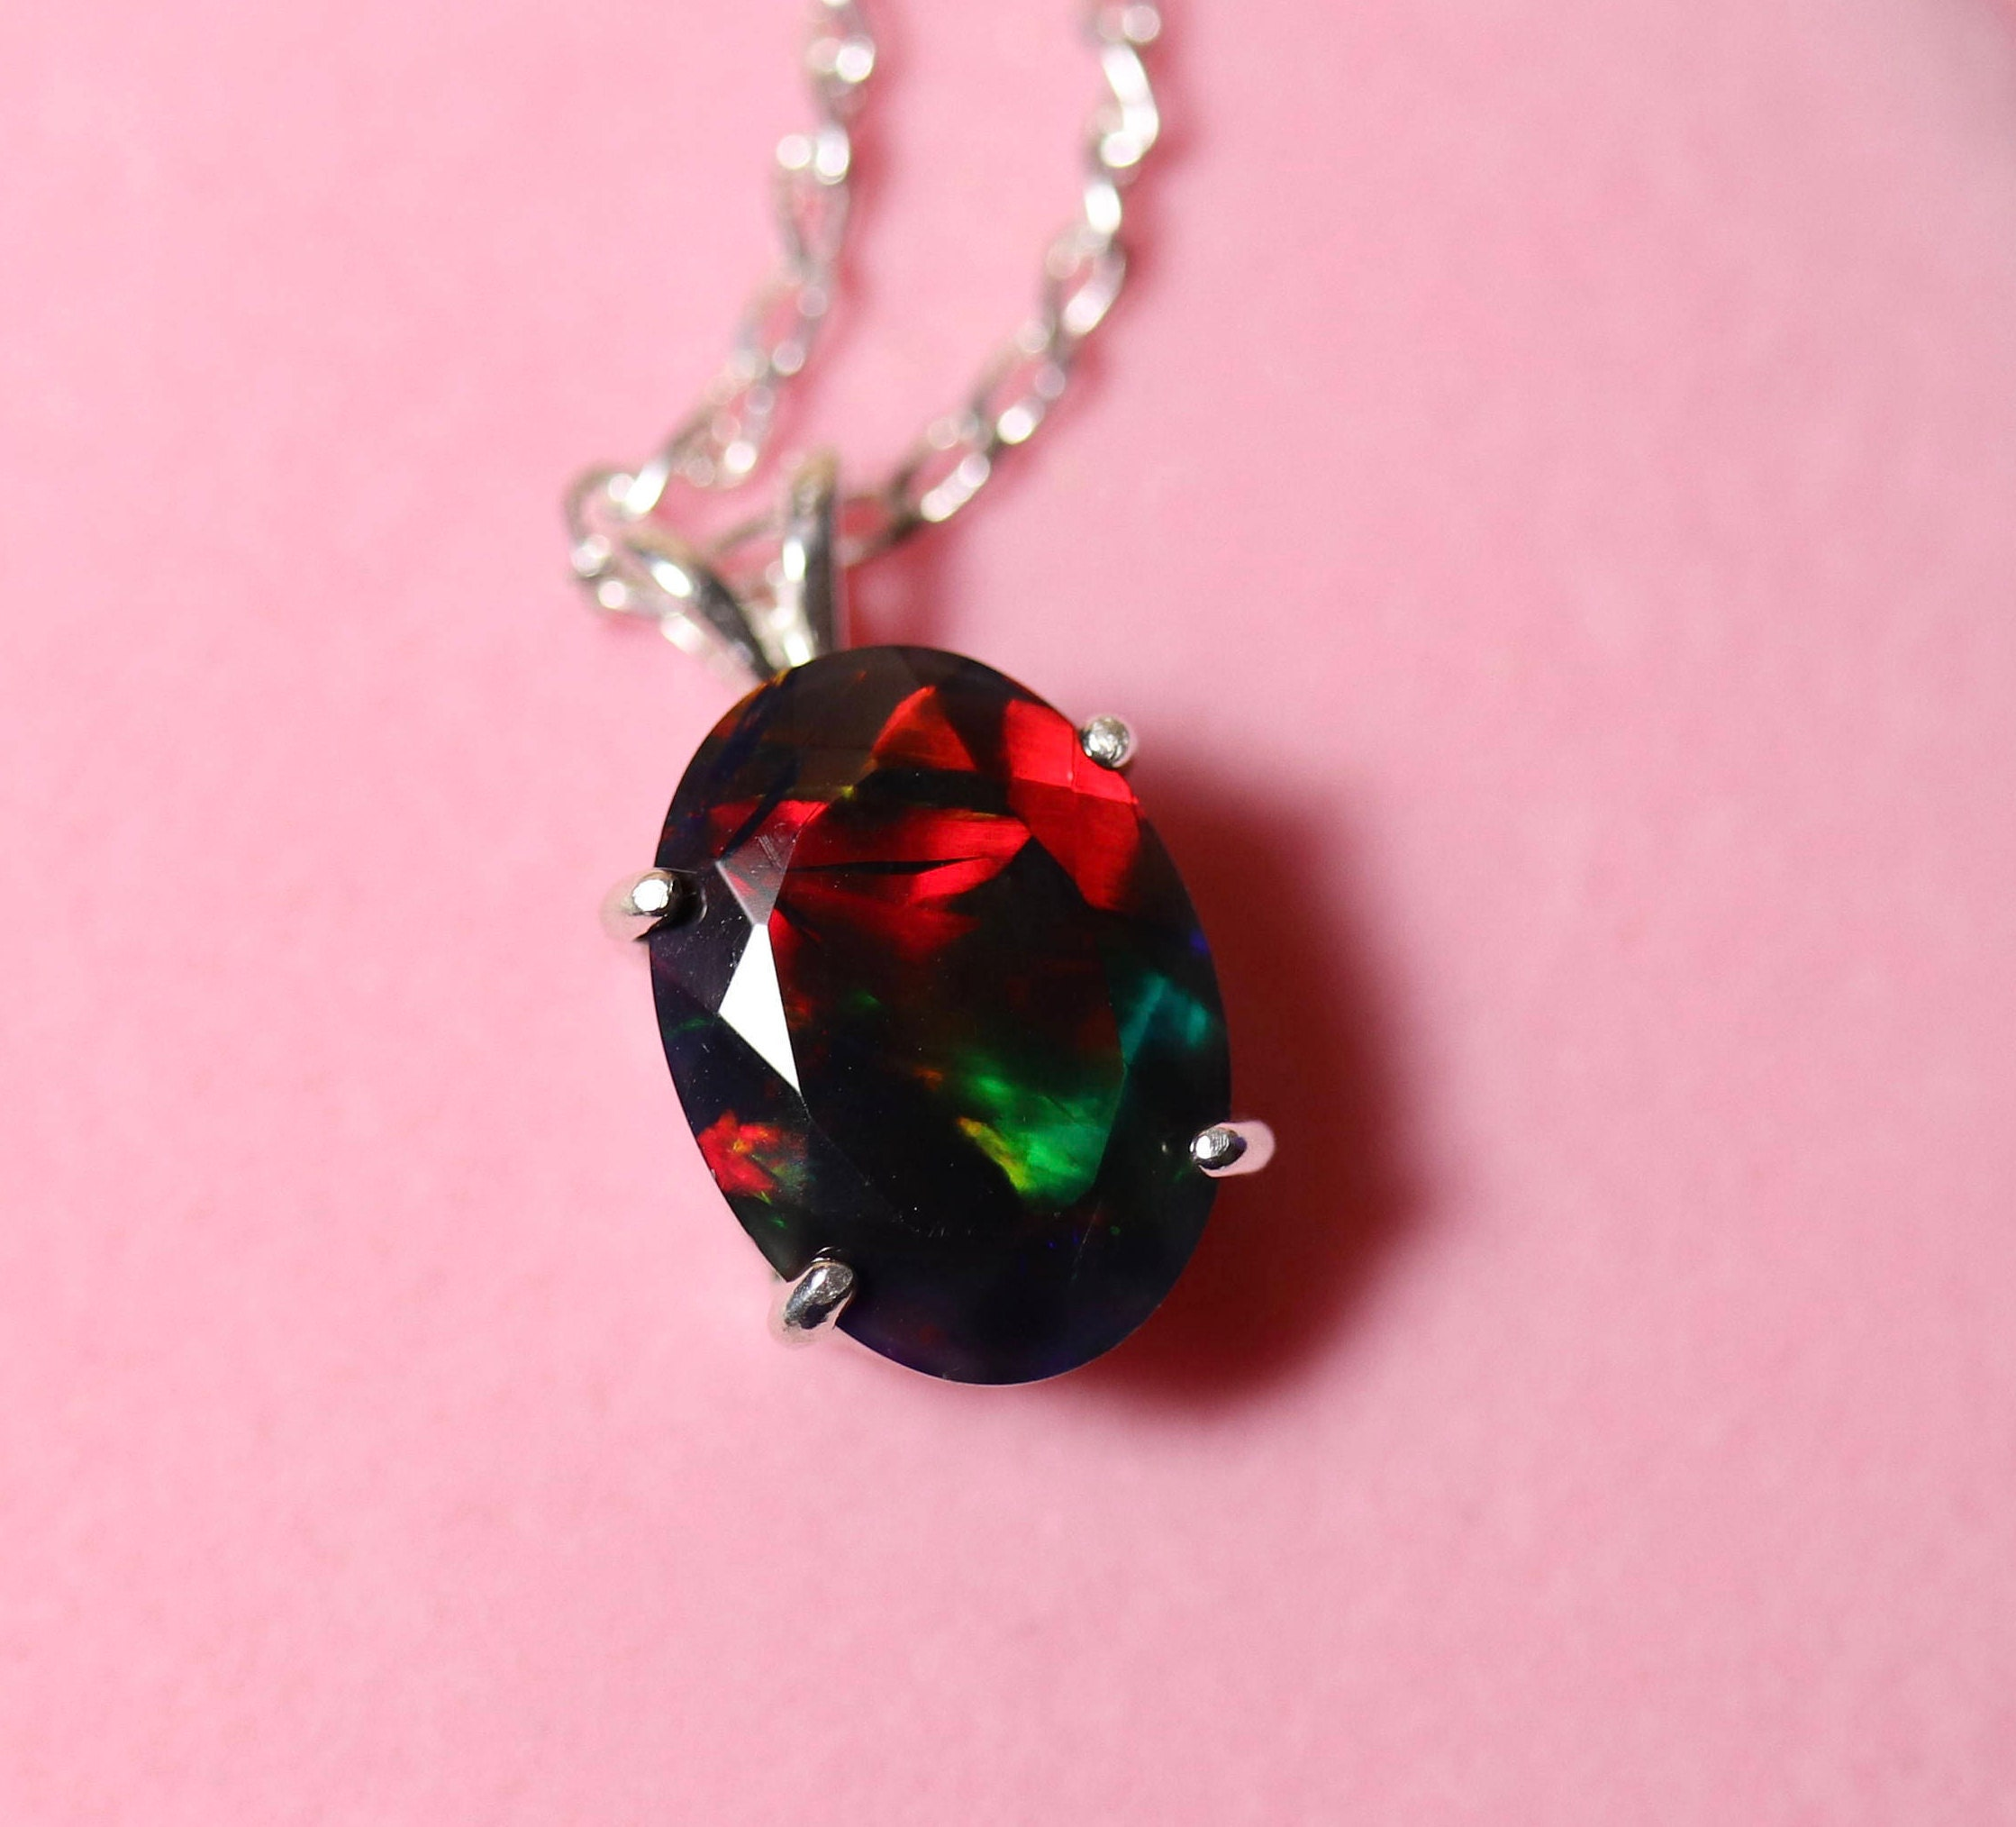 knot sterling shipping free black opal oravo created product jewelry on ct infinity overstock silver pendant over necklace watches orders